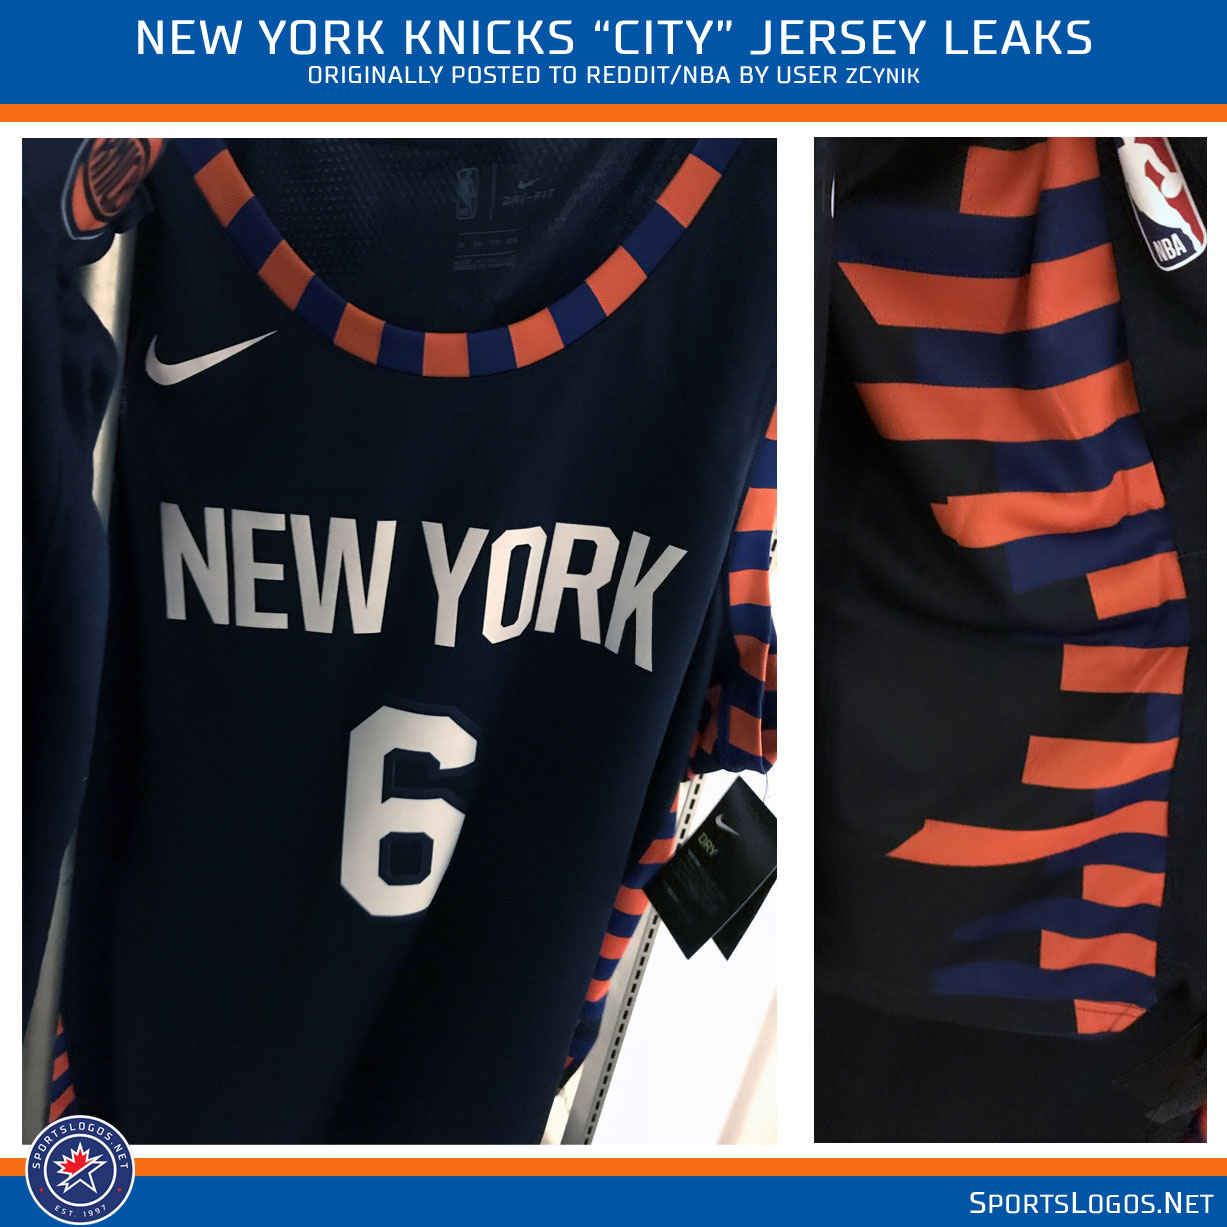 low priced b9d02 5cc91 More NBA City Uniform Leaks: Nets, Pacers, and Knicks ...